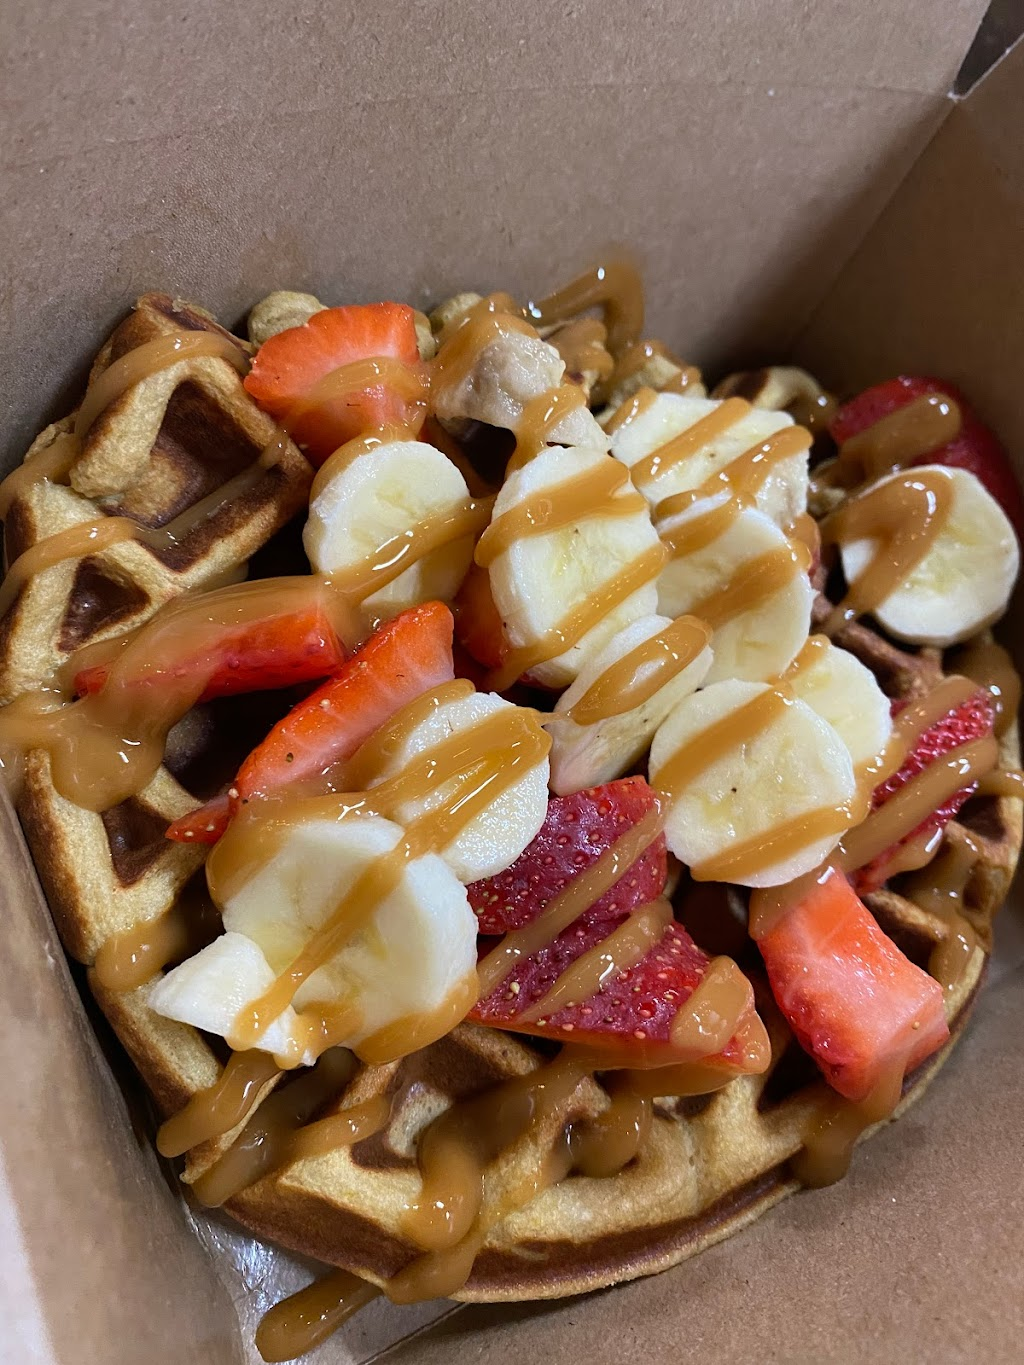 Box House Nutrition   cafe   37490 US Hwy 19 N, Palm Harbor, FL 34684, USA   8134015656 OR +1 813-401-5656